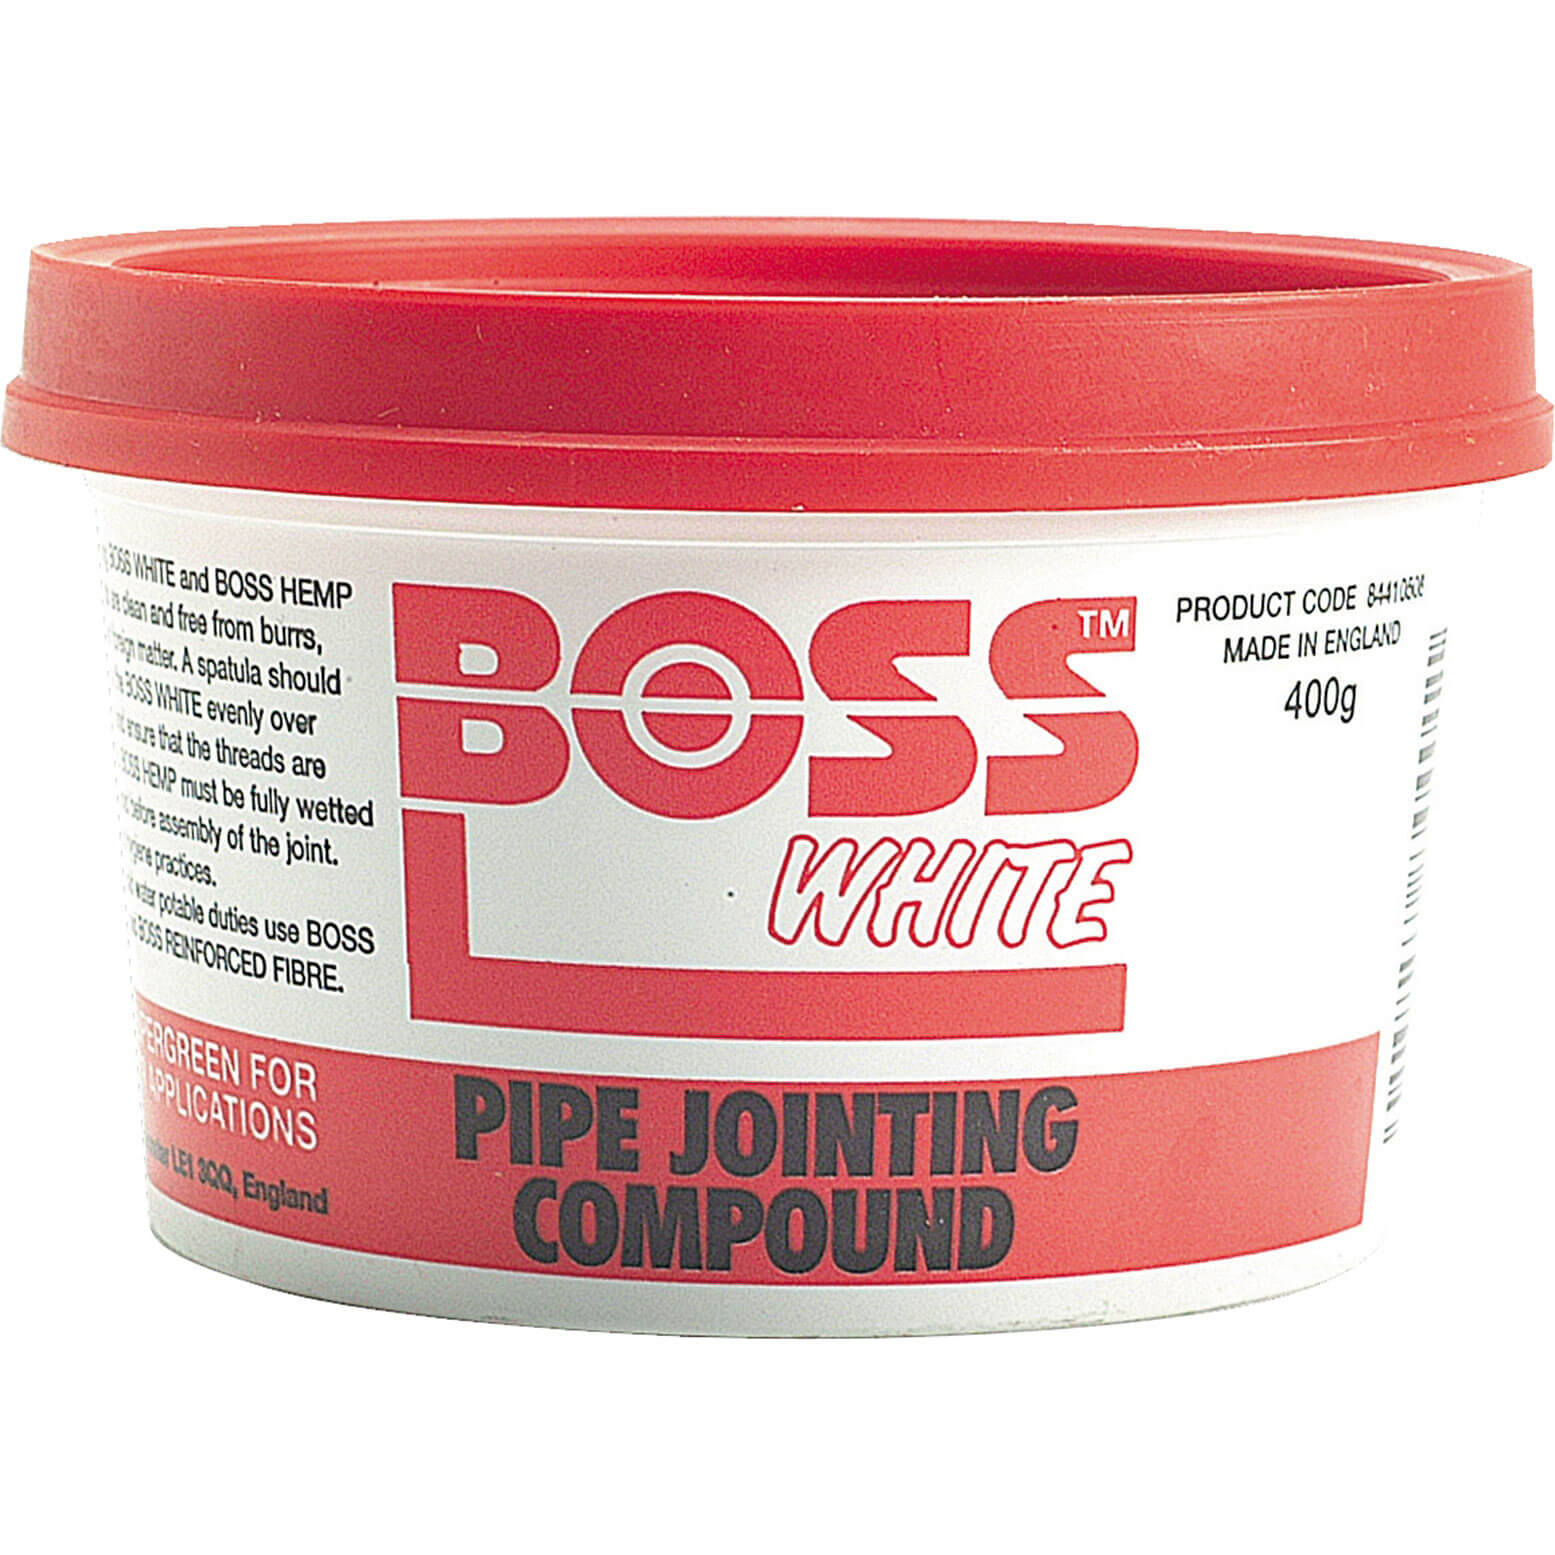 Image of Boss White Pipe Jointing Compound 400g